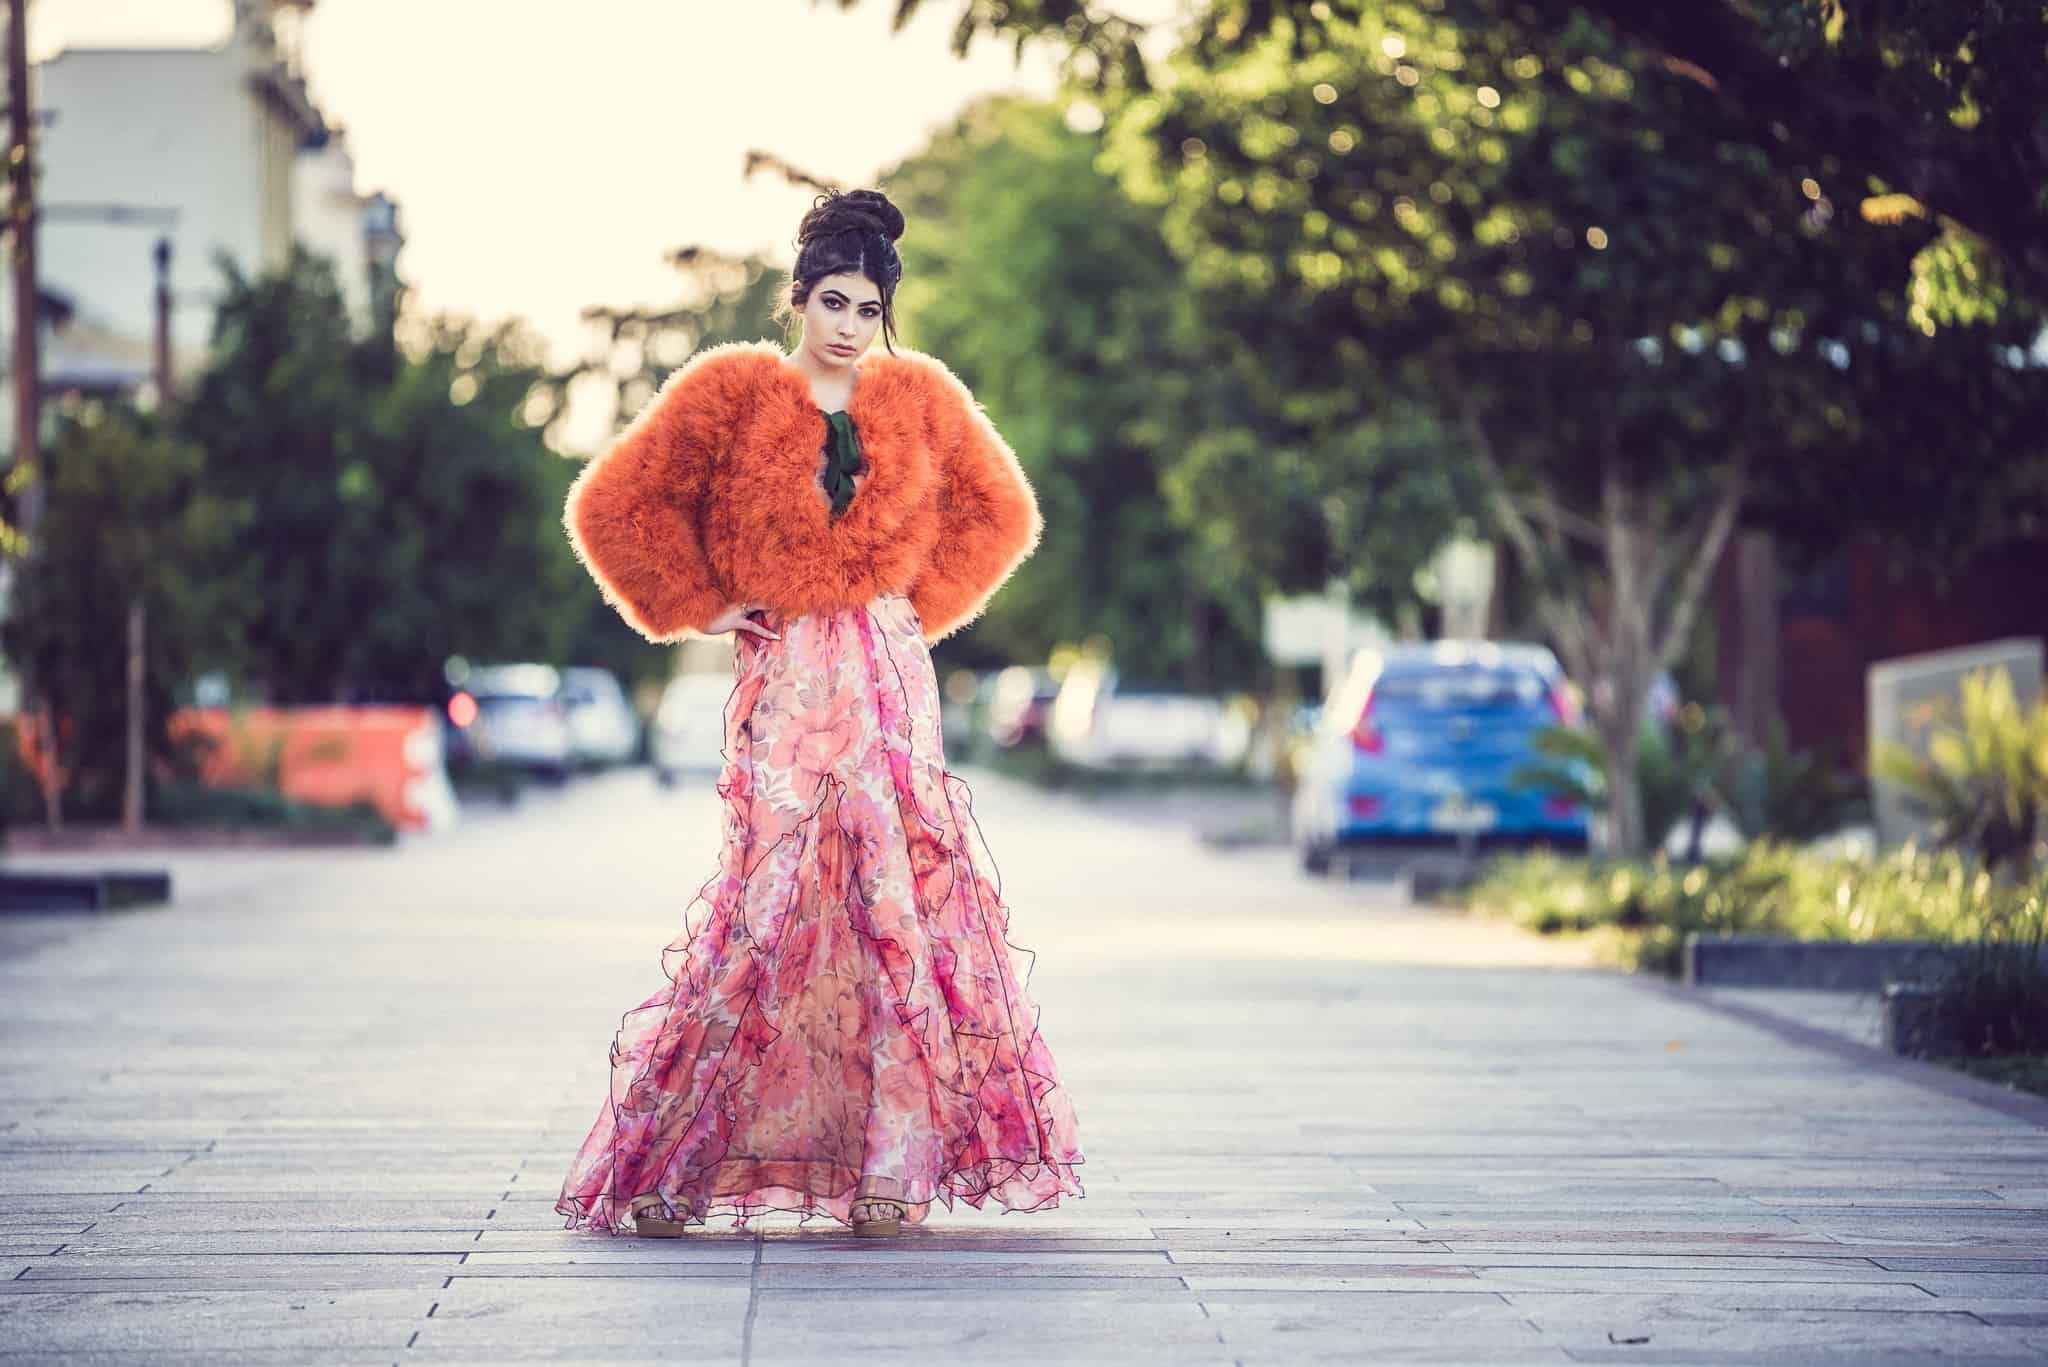 odel in dress and fur coat on the road